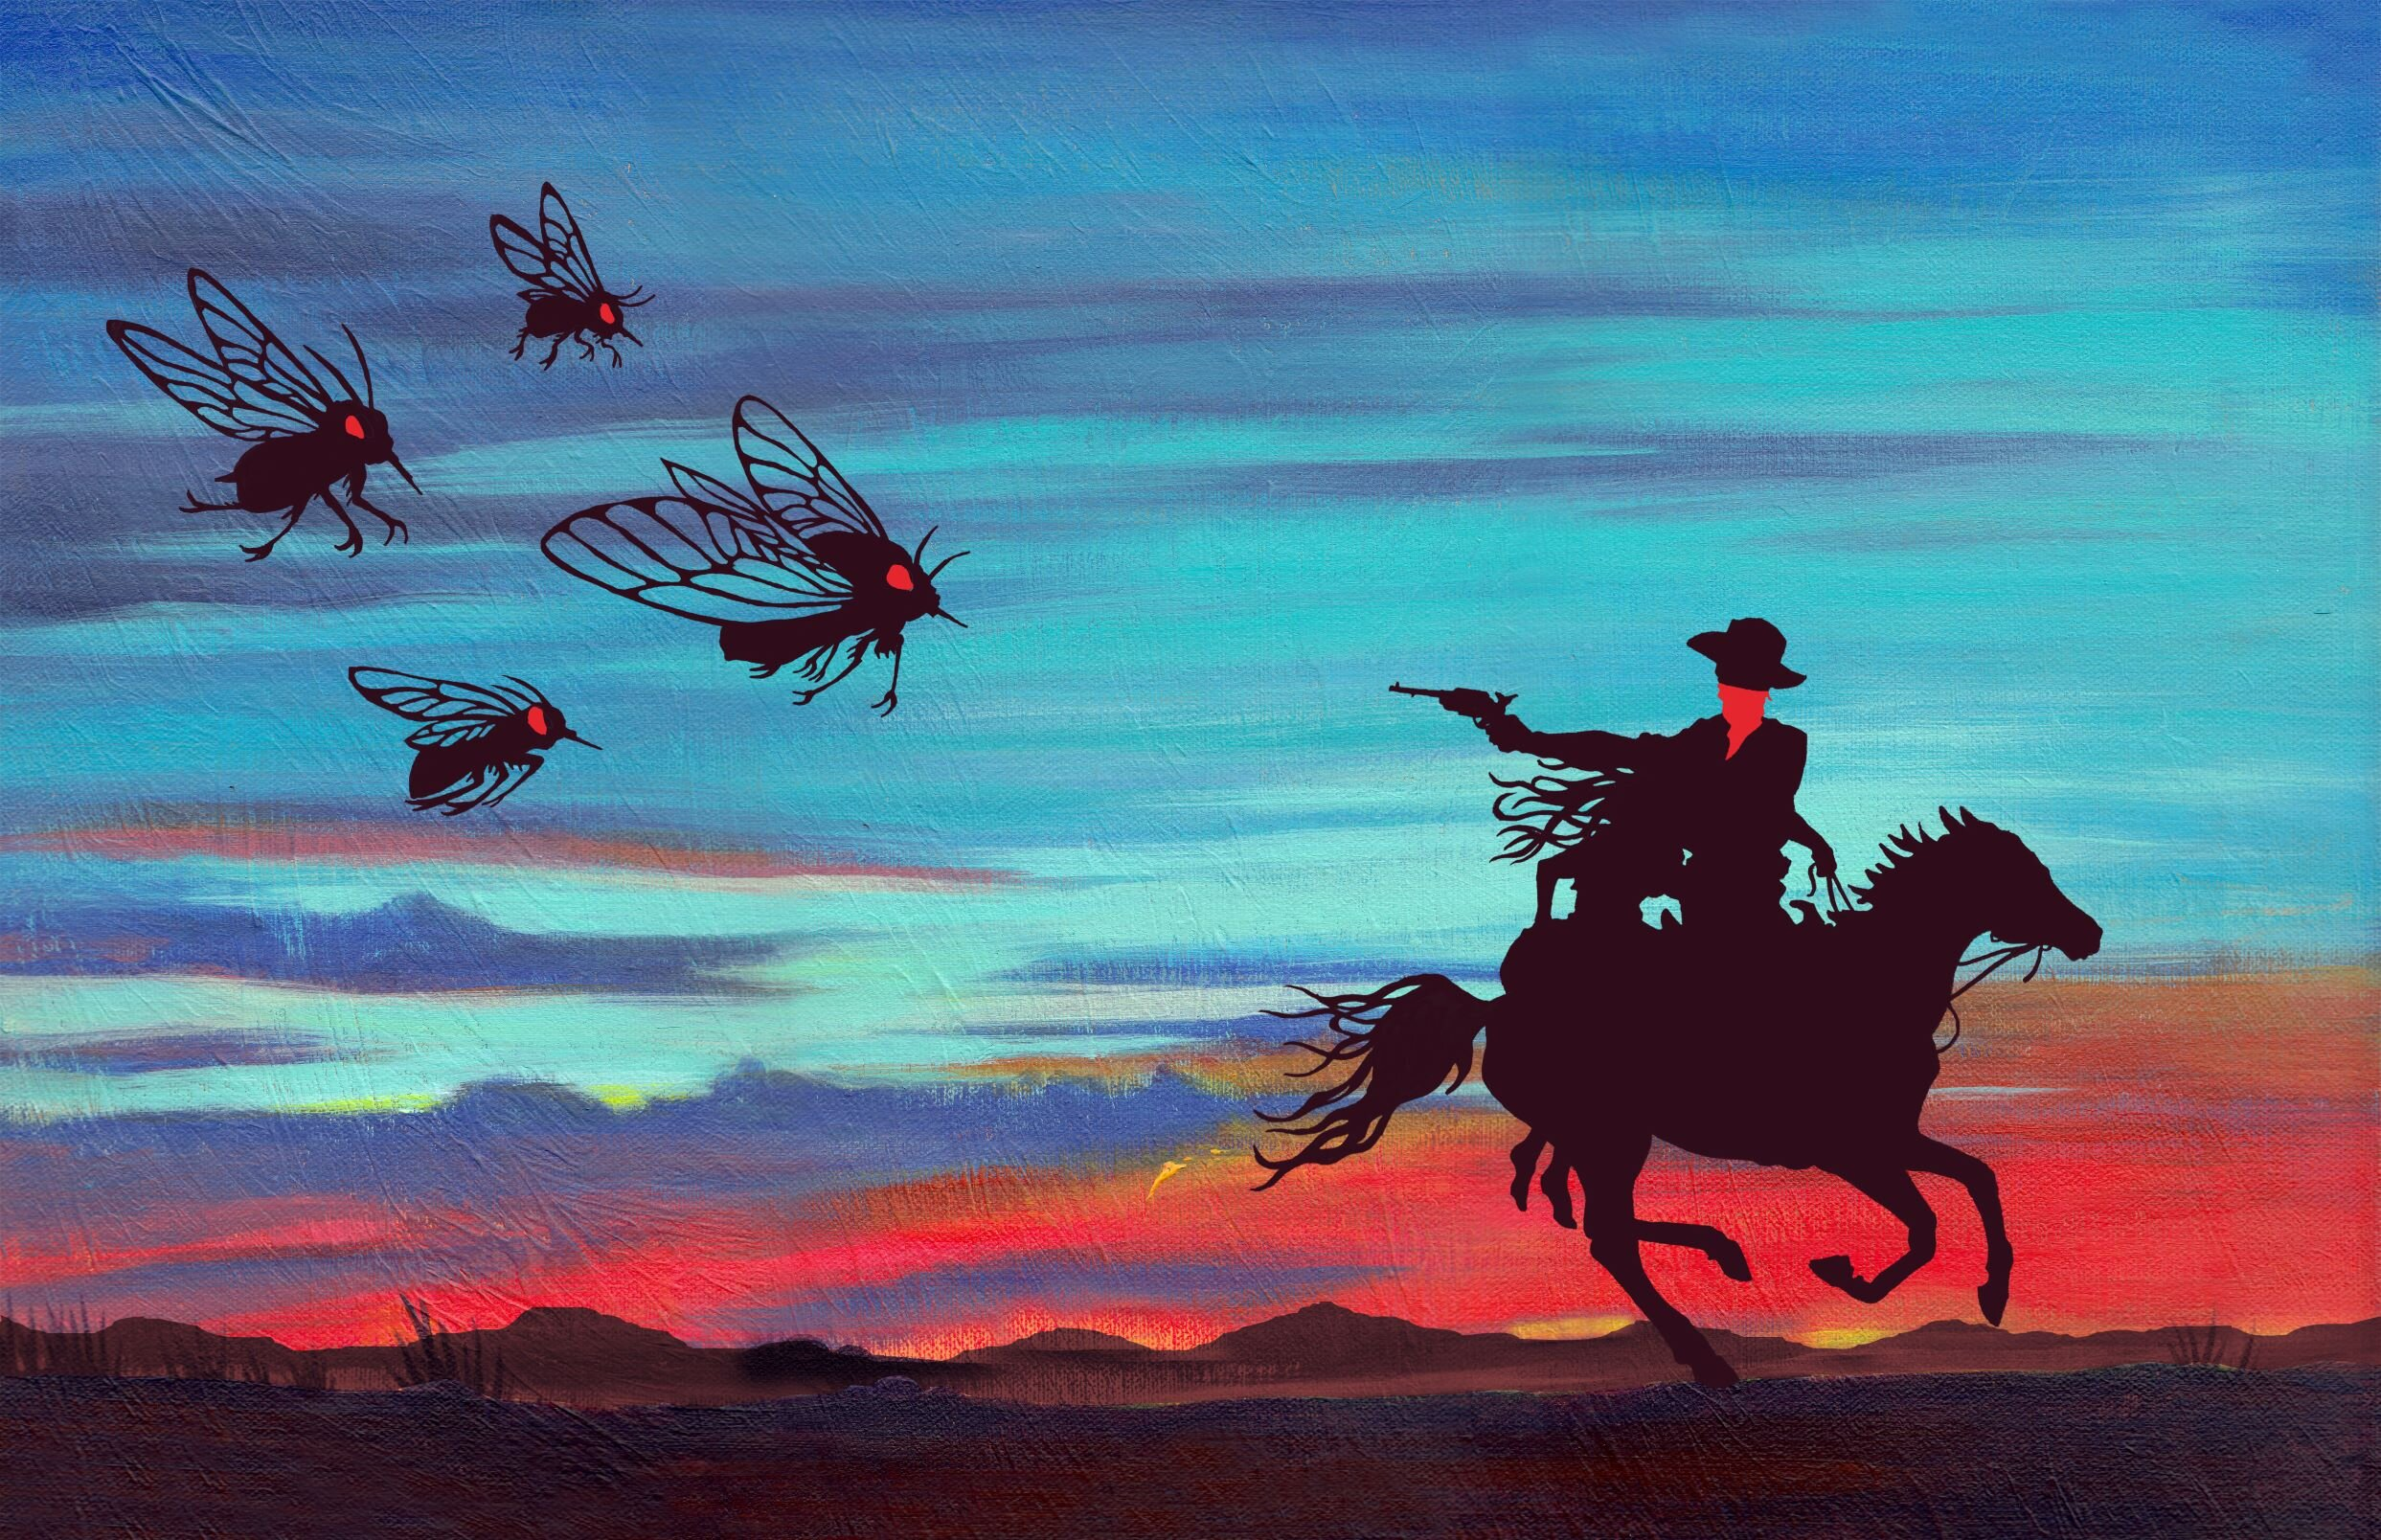 The Cowboy and the Cicadas - artwork by Kristen Ross